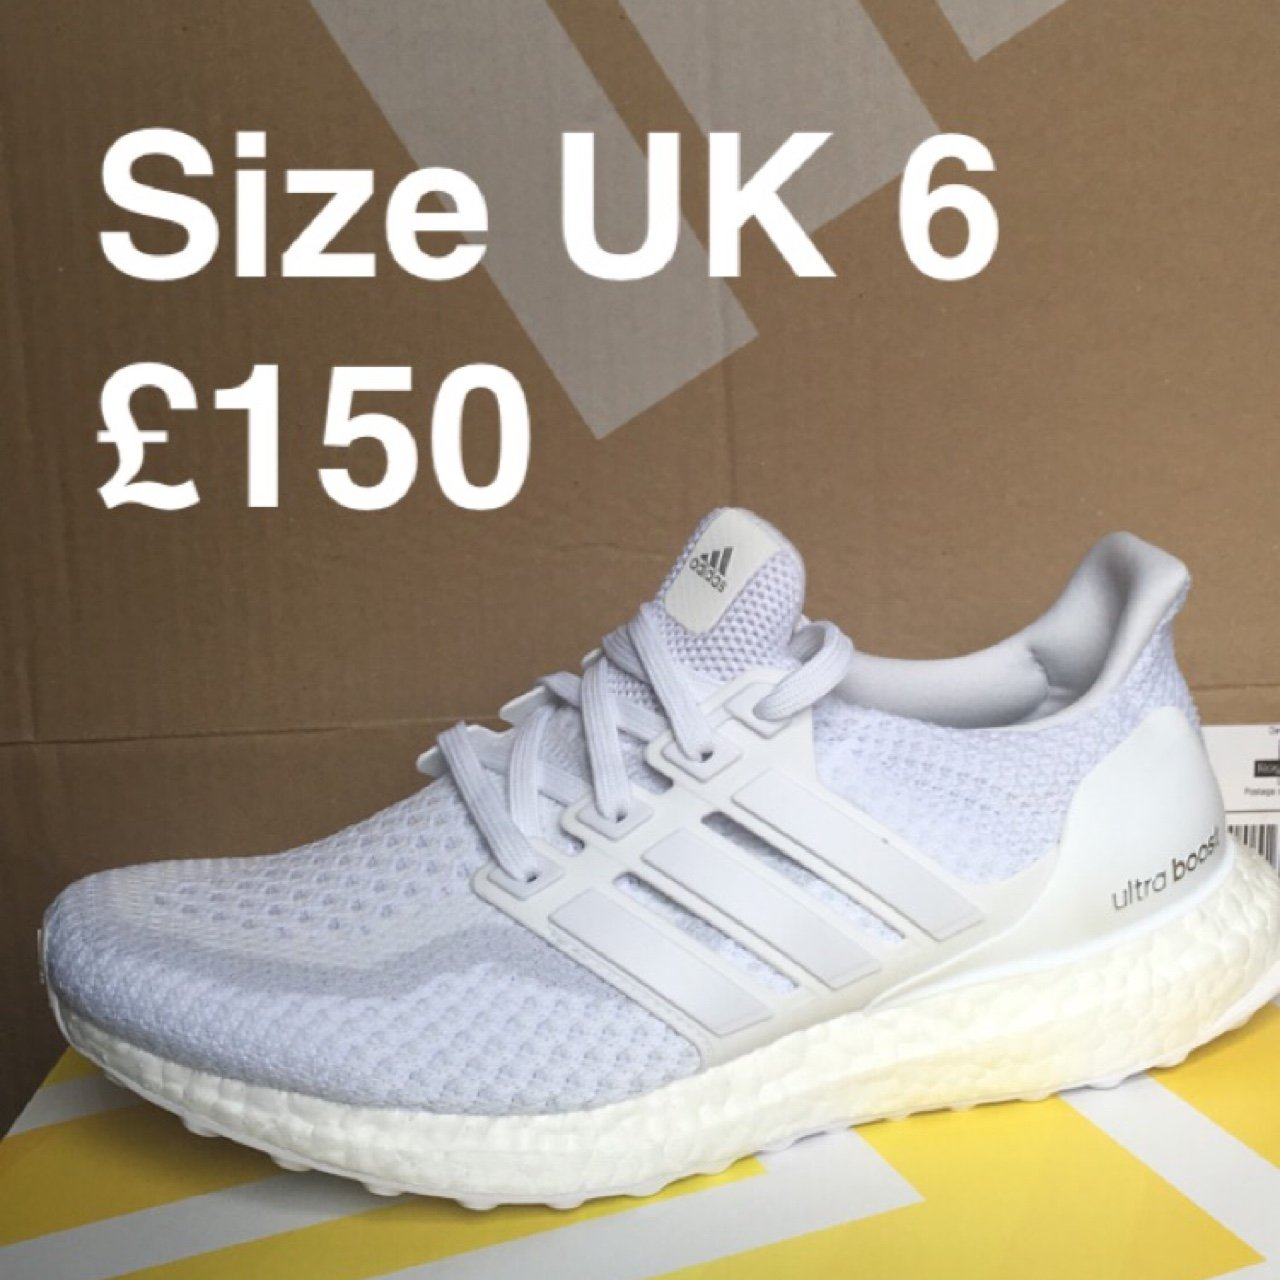 BRAND NEW Adidas Triple White Ultra Boost 2.0 ✓ Women s UK - Depop 2956ba1d1